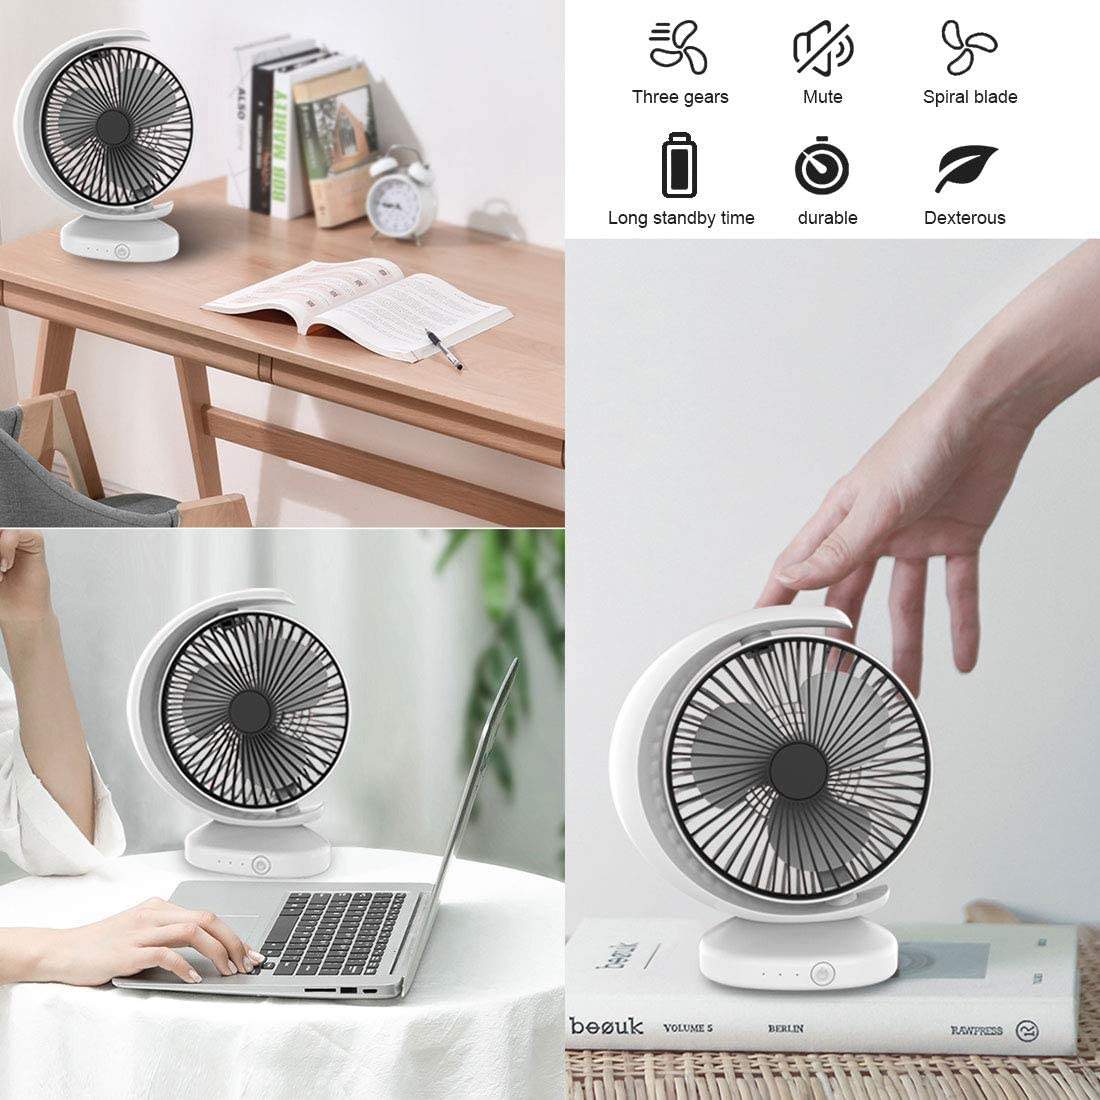 Rechargeable Desk Fan 3 Speeds Desk Desktop Table Cooling Fan Strong Wind,Quiet Operation,for Home Office Car Outdoor Travel White lurui USB Desk Fan